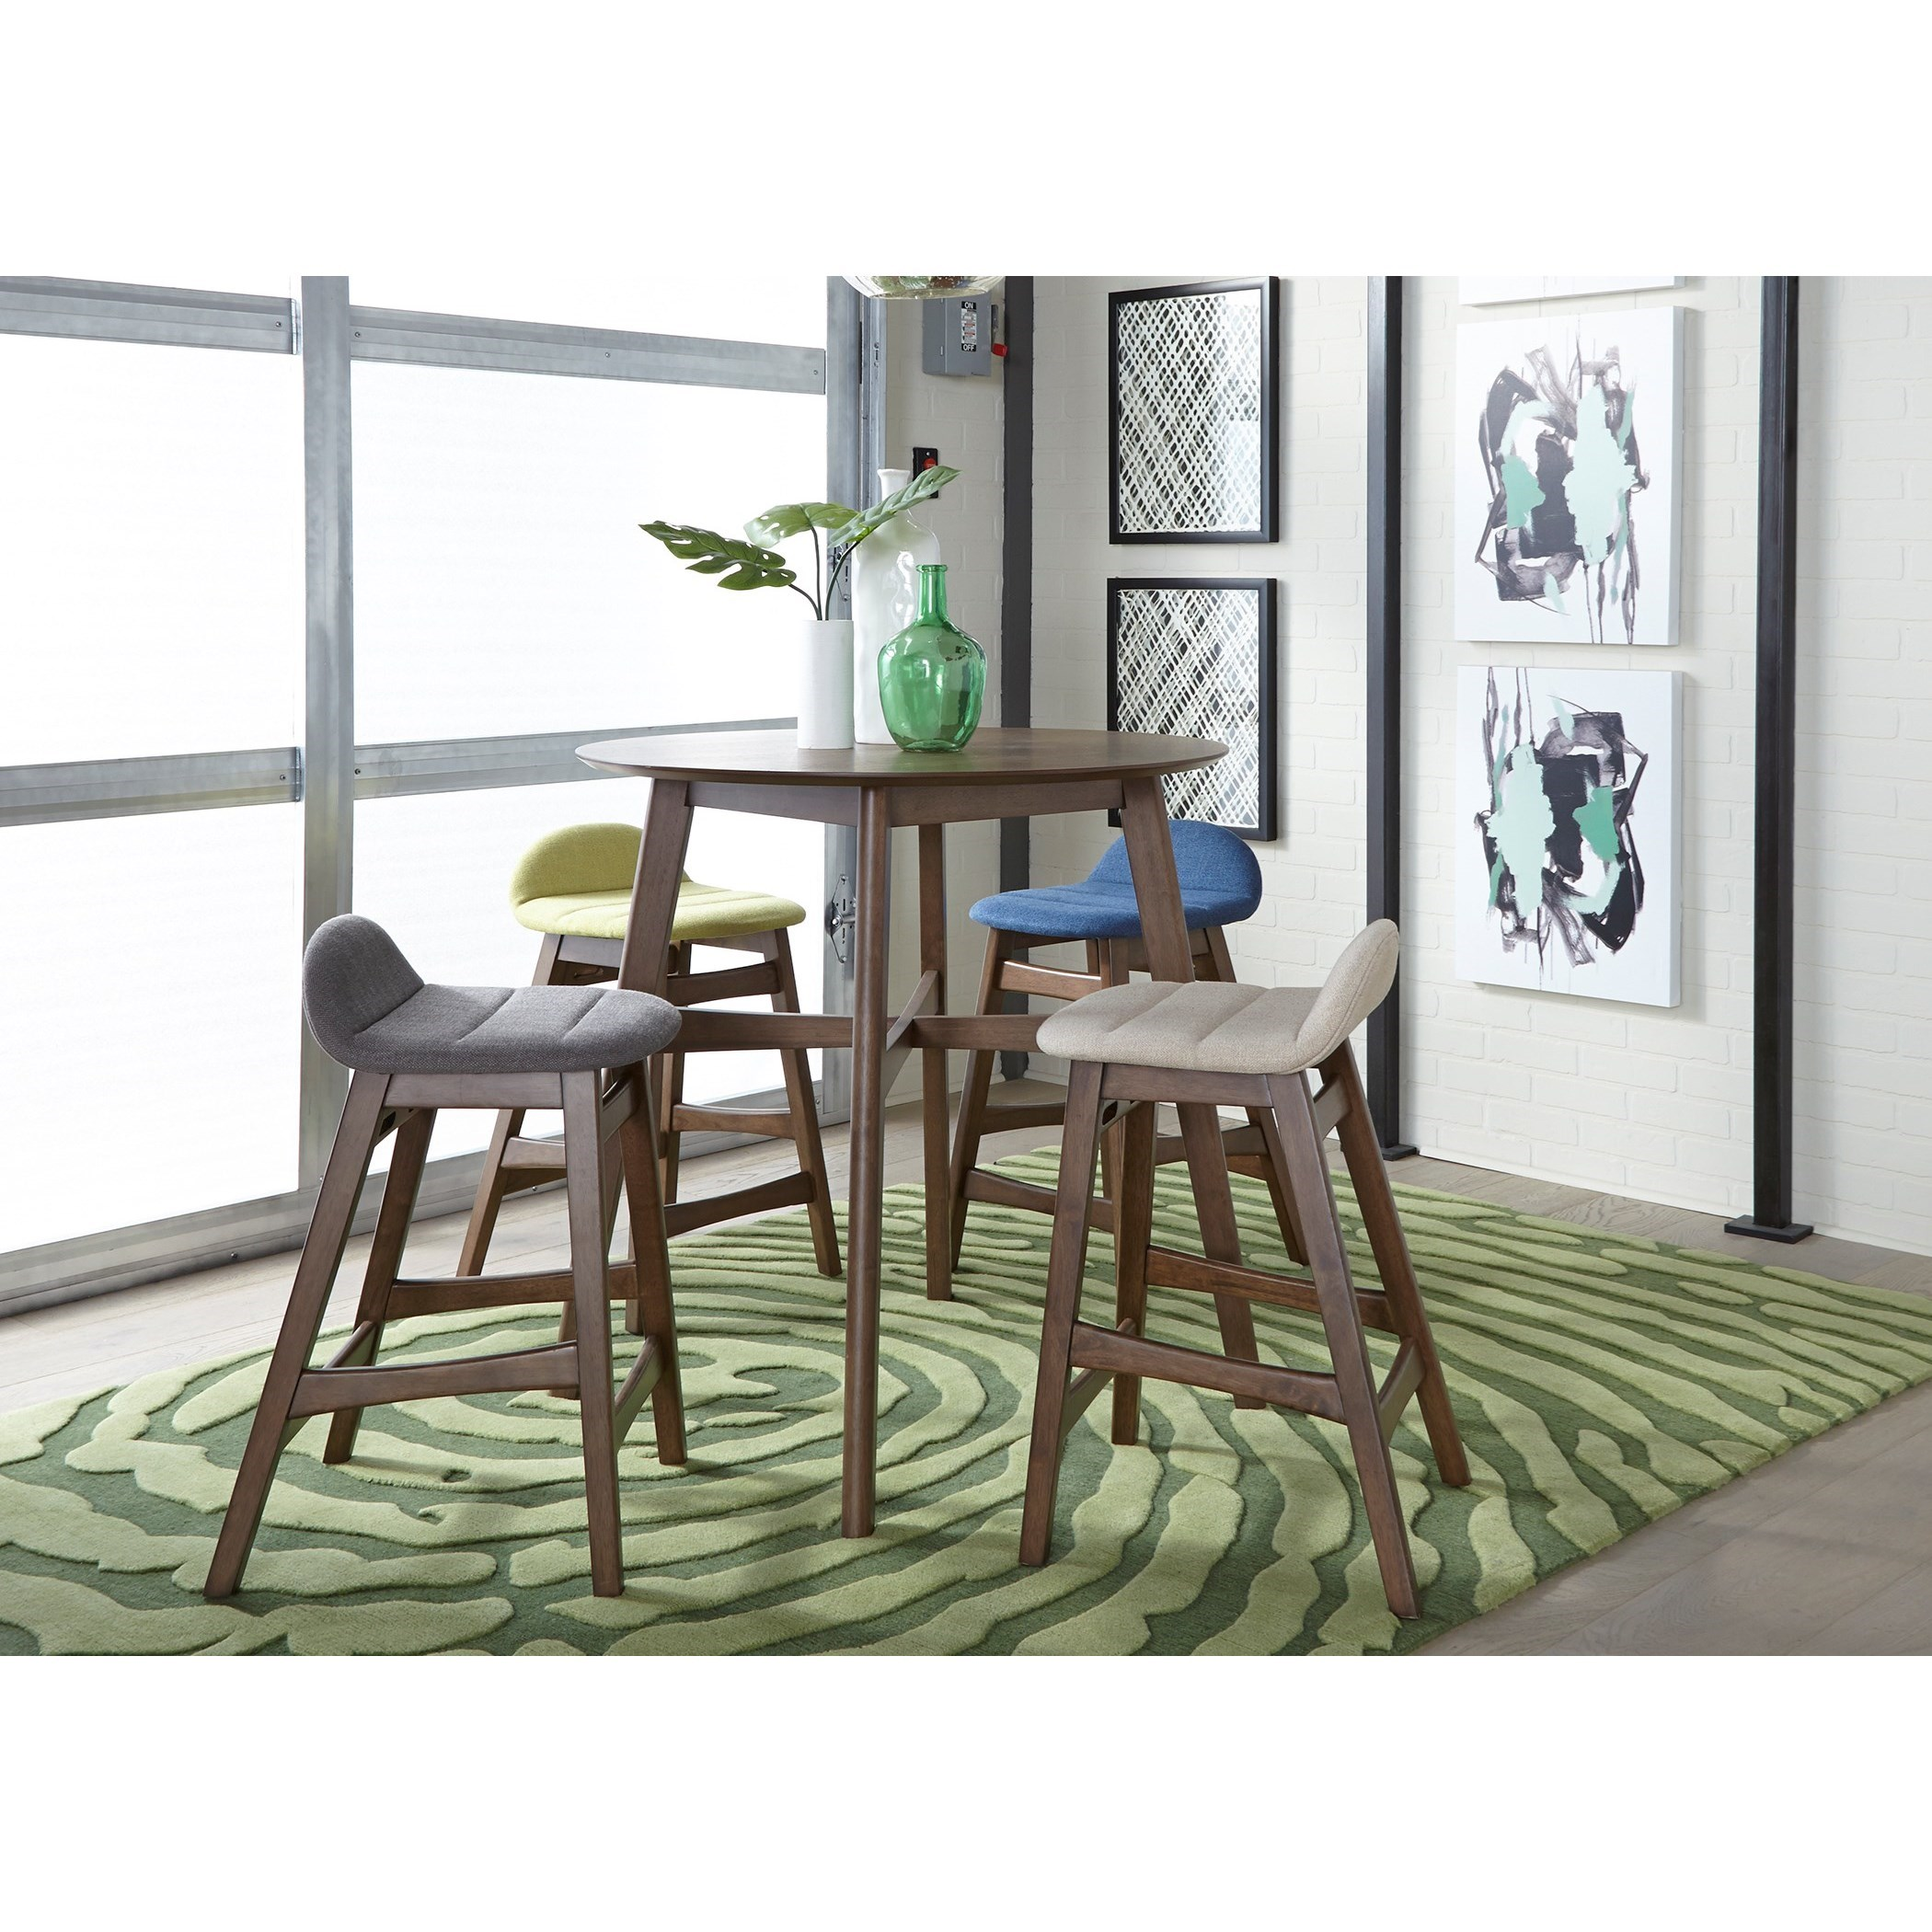 Space Savers 5-Piece Gathering Table Set  by Libby at Walker's Furniture